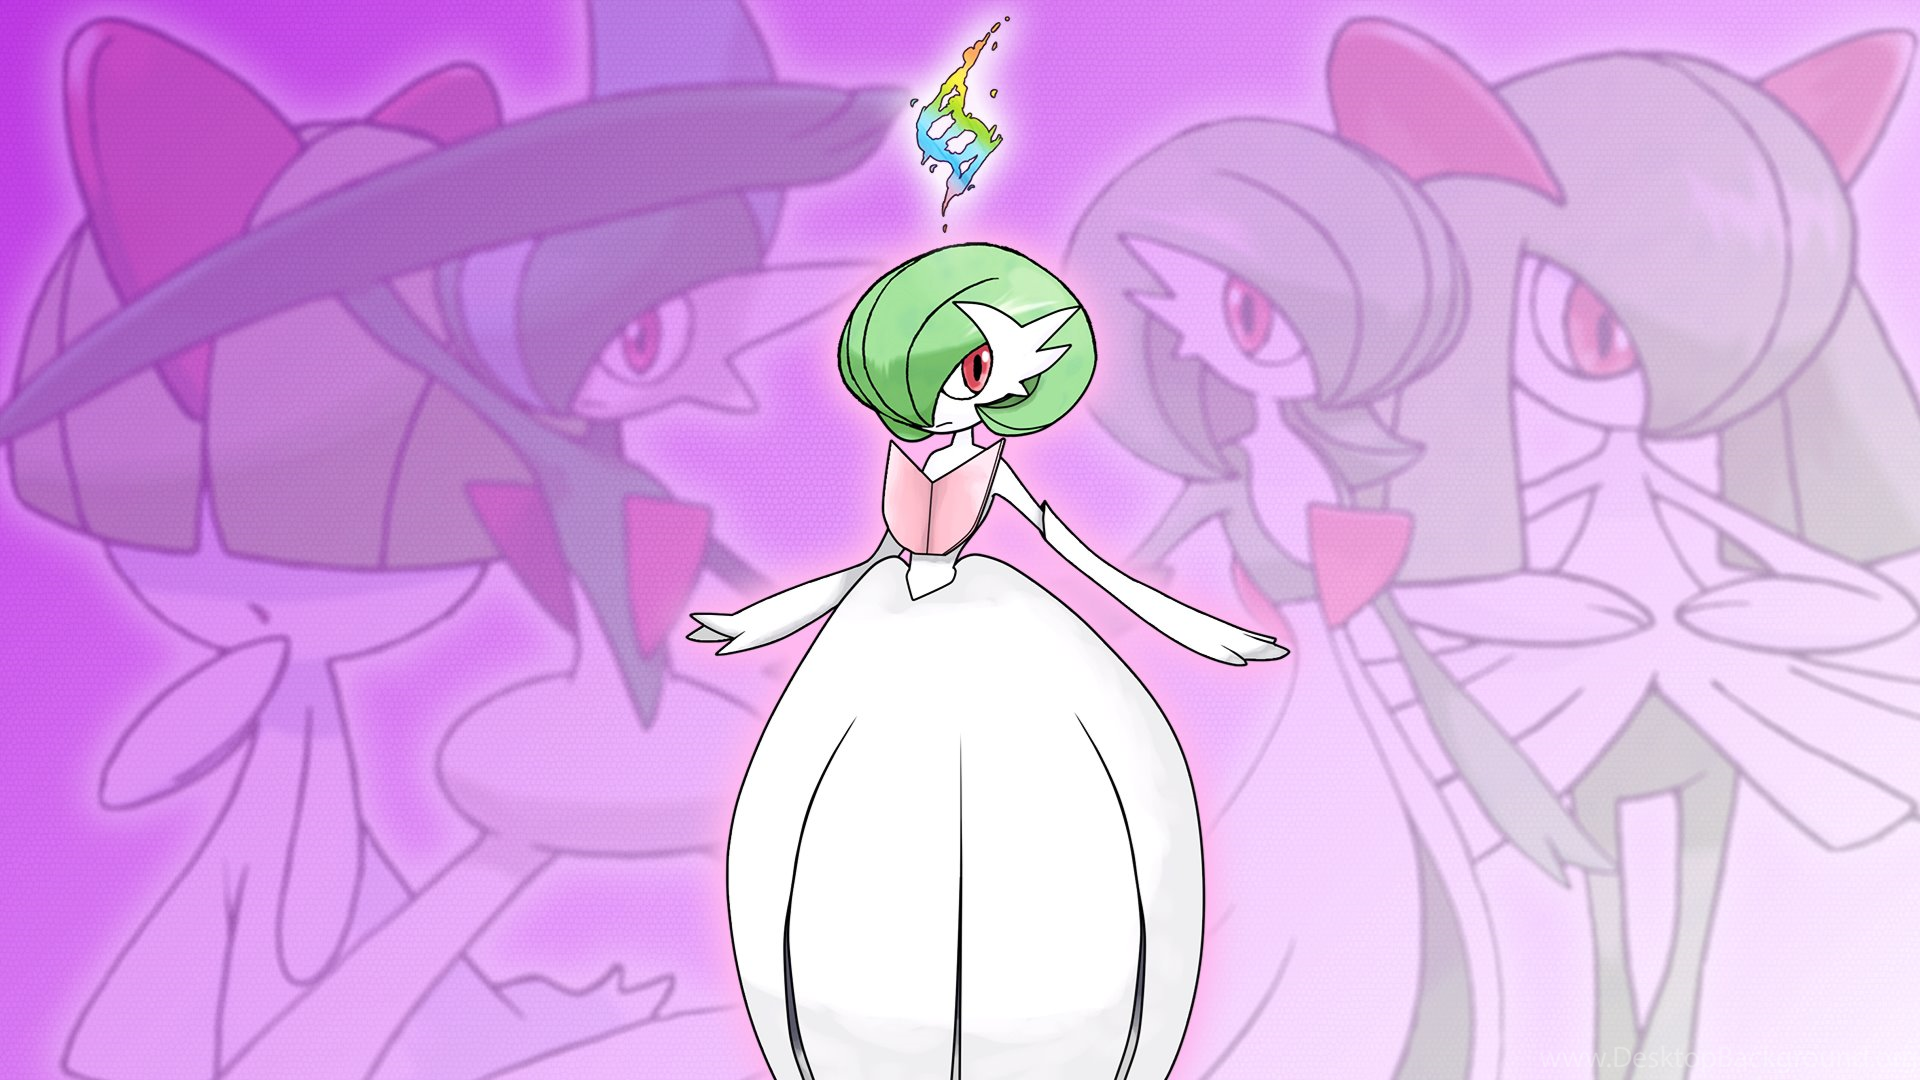 Shiny Mega Gardevoir Wallpaper: Shiny Mega Gardevoir Wallpapers By Glench On DeviantArt